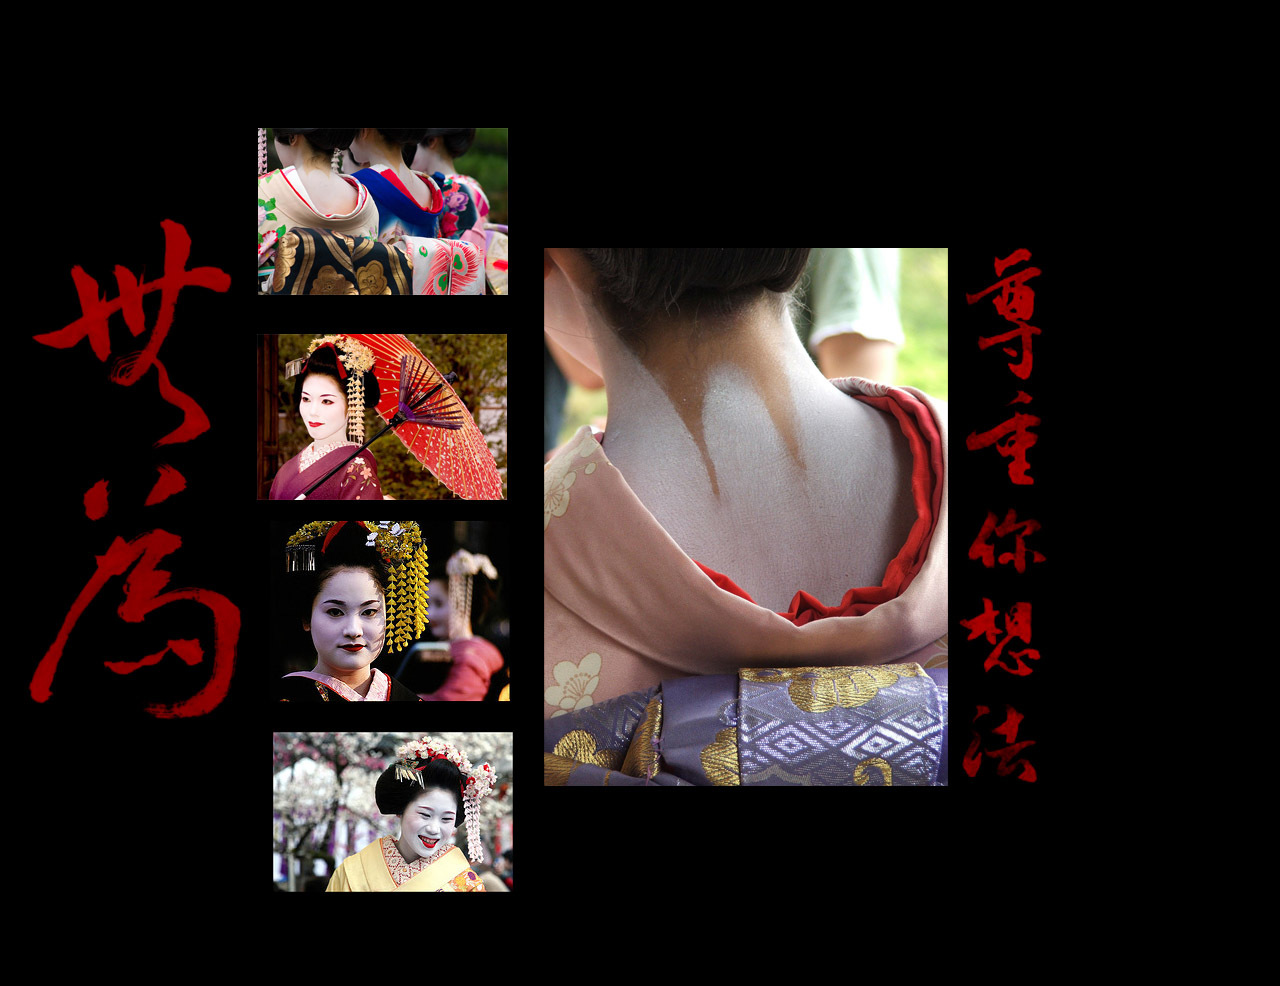 Japanese Geisha Wallpaper Desktop Background Funny   Doblelolcom 1280x986